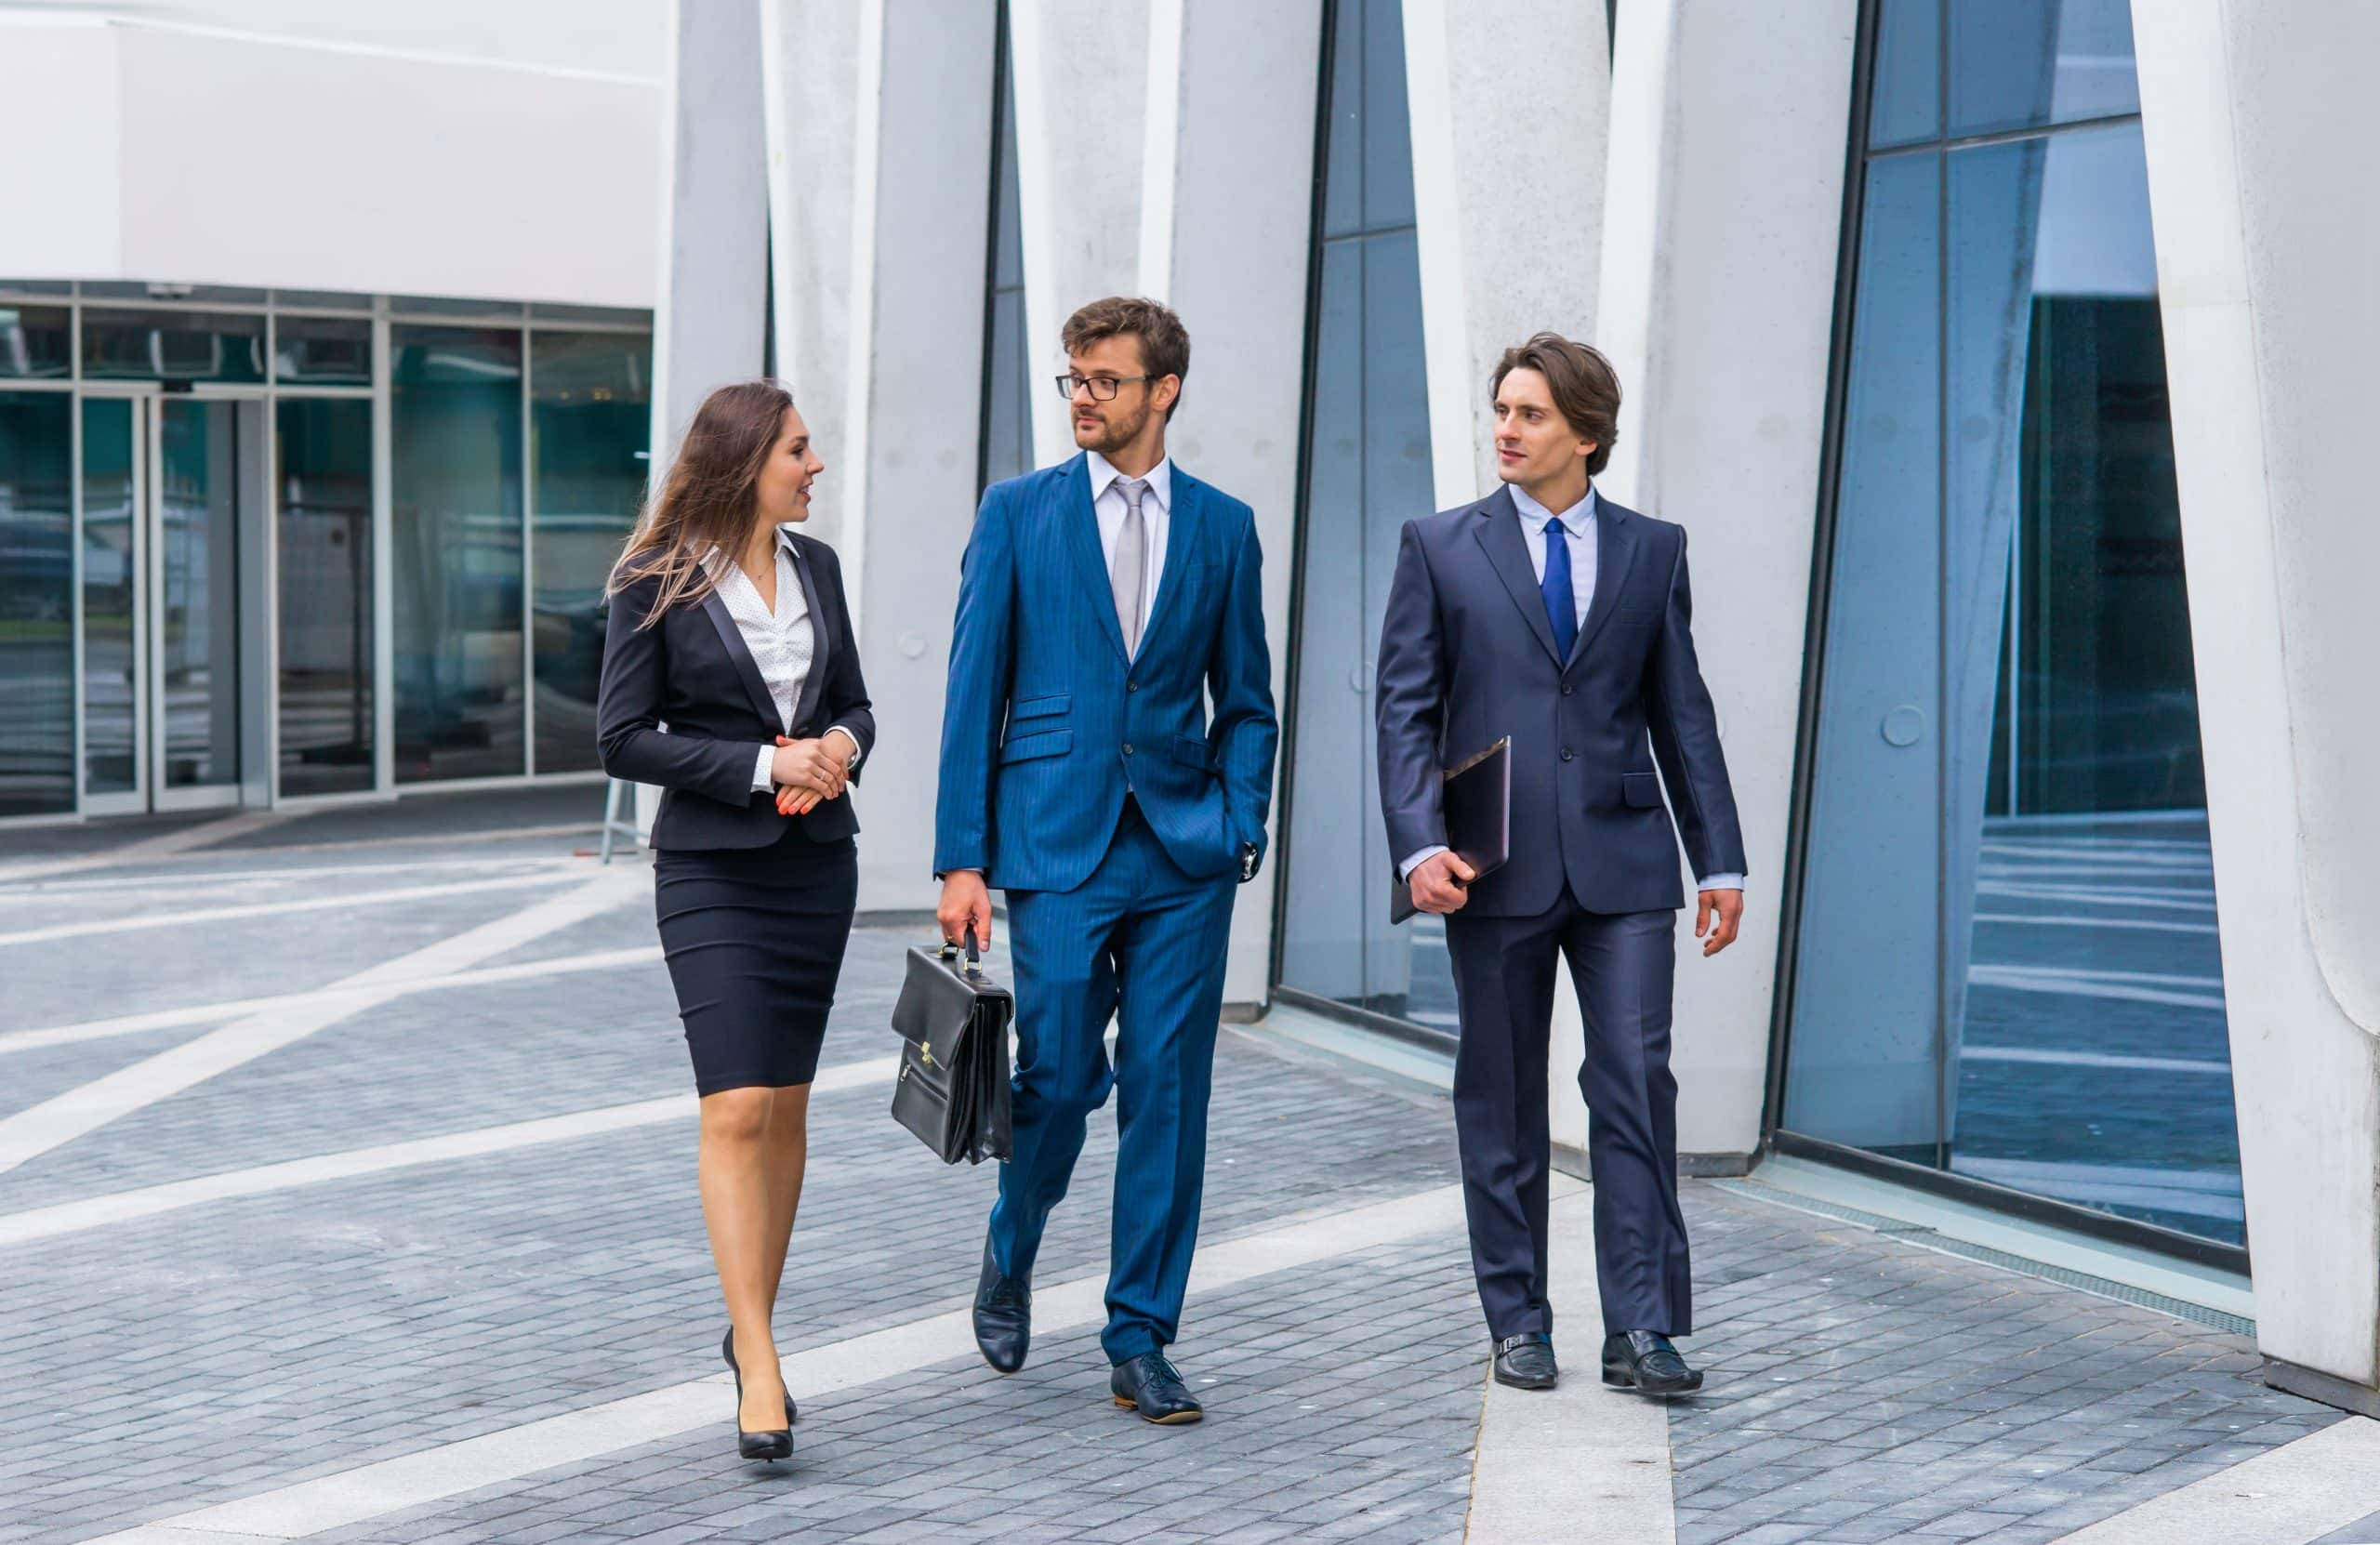 Businessmen and businesswoman have law business conversation